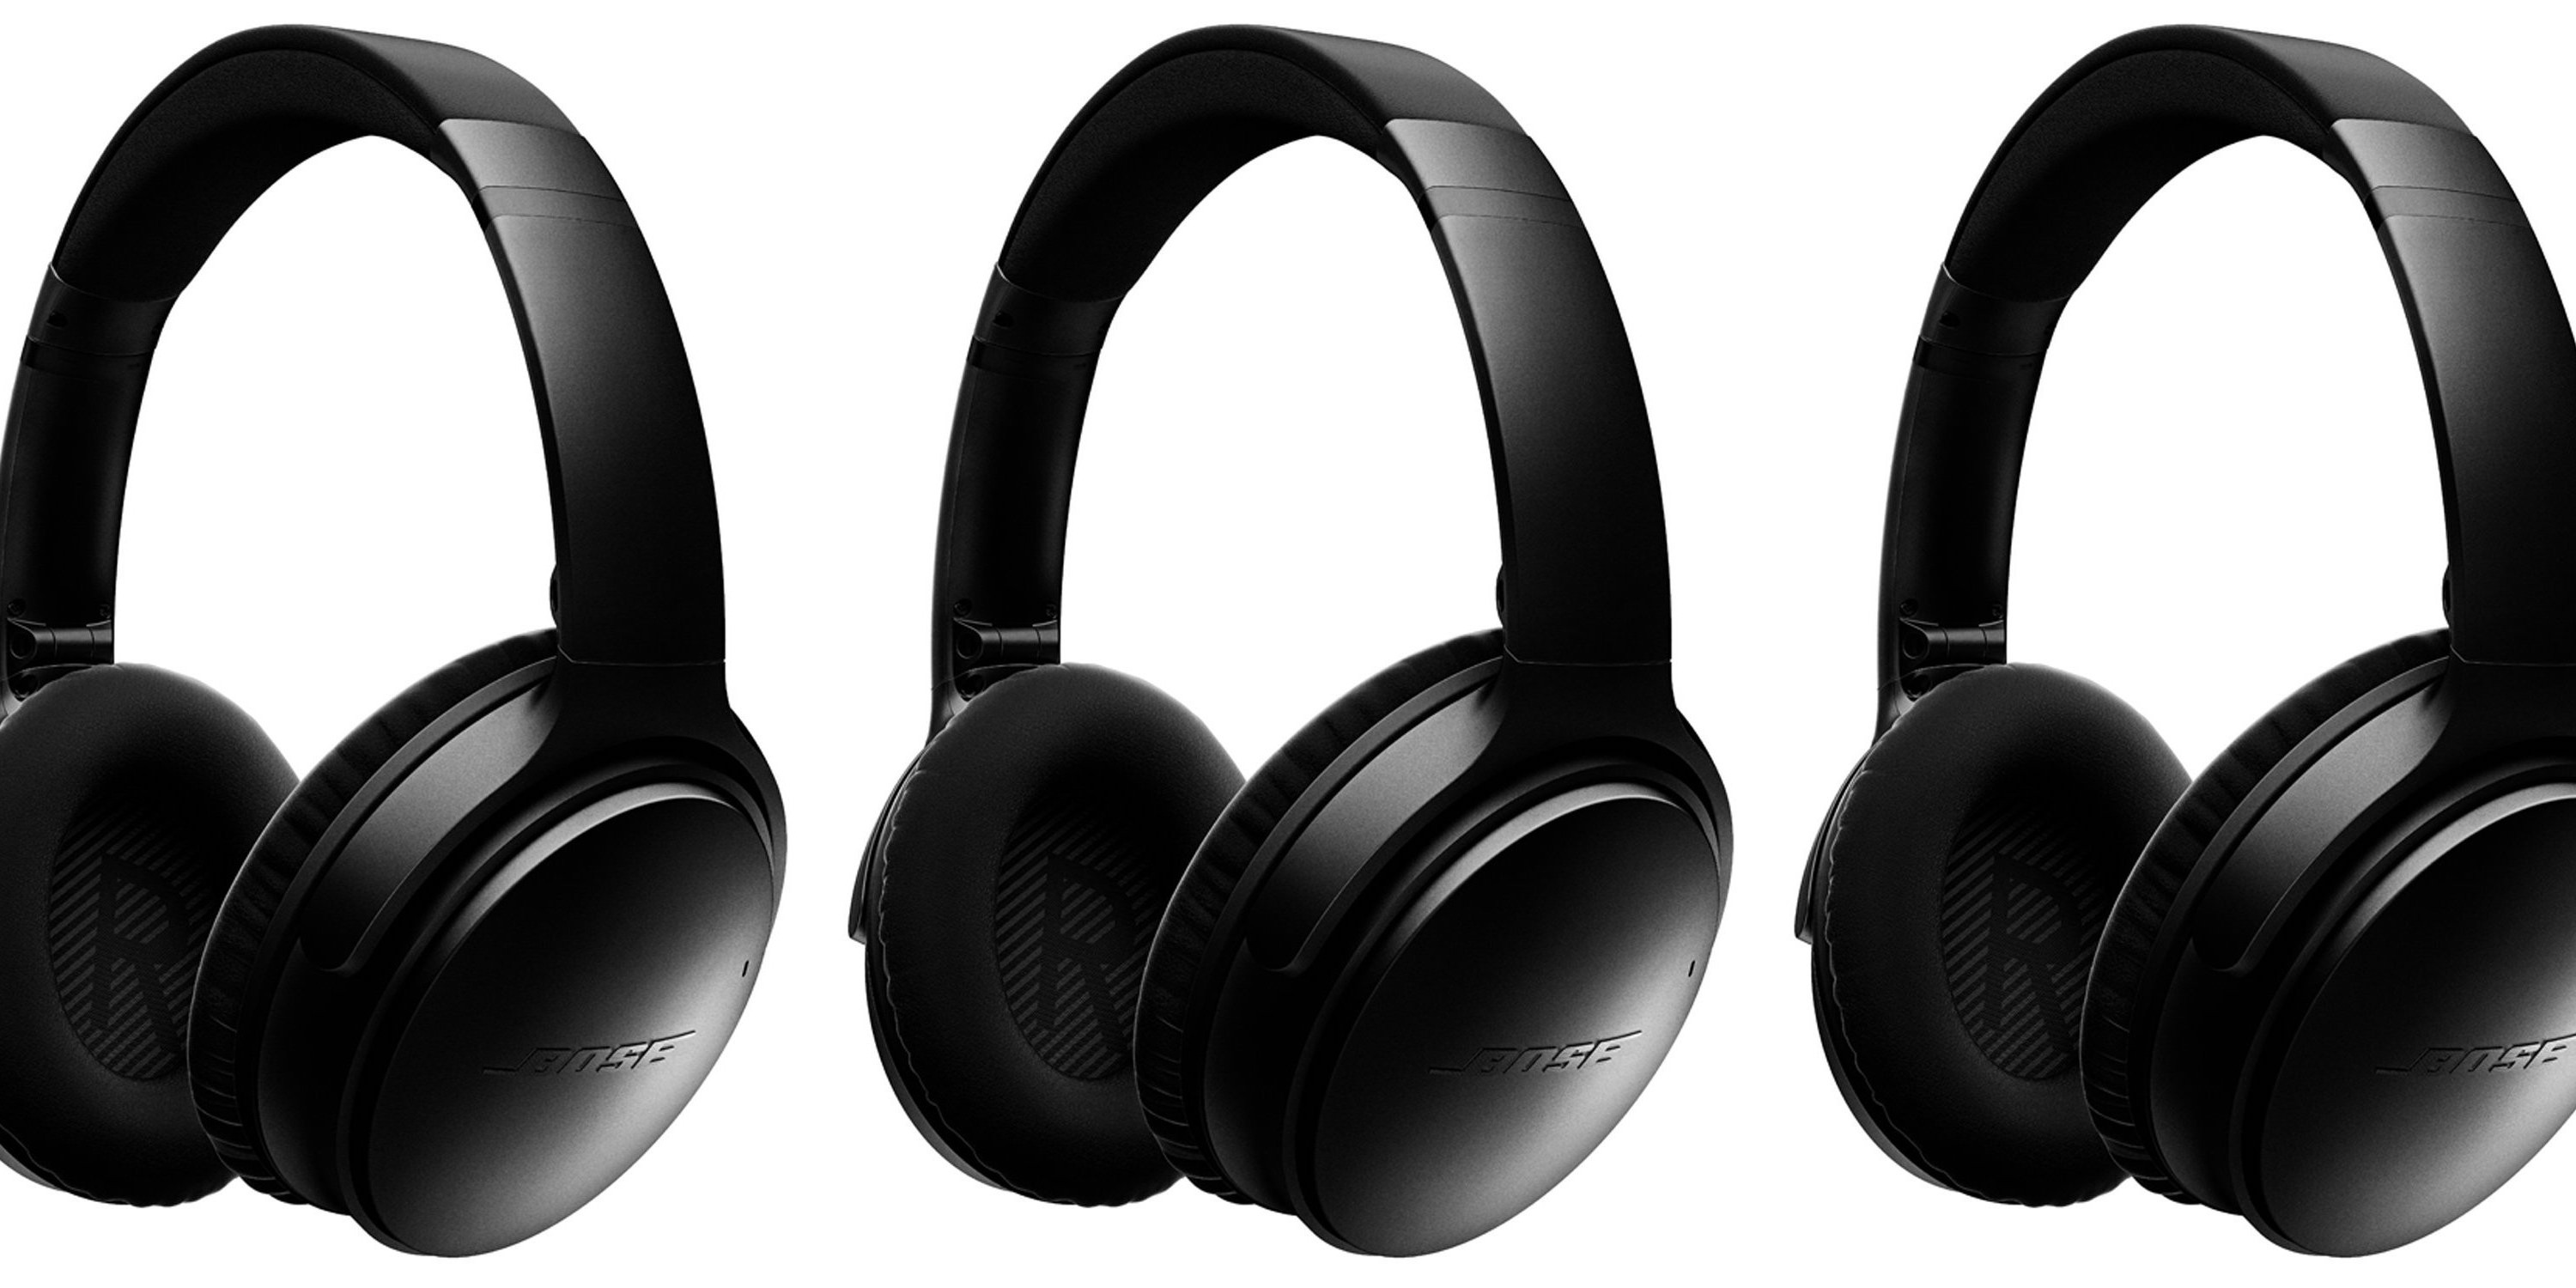 2946e565165 Best of Black Friday 2018 - Headphones: Bose QuietComfort, Beats ...